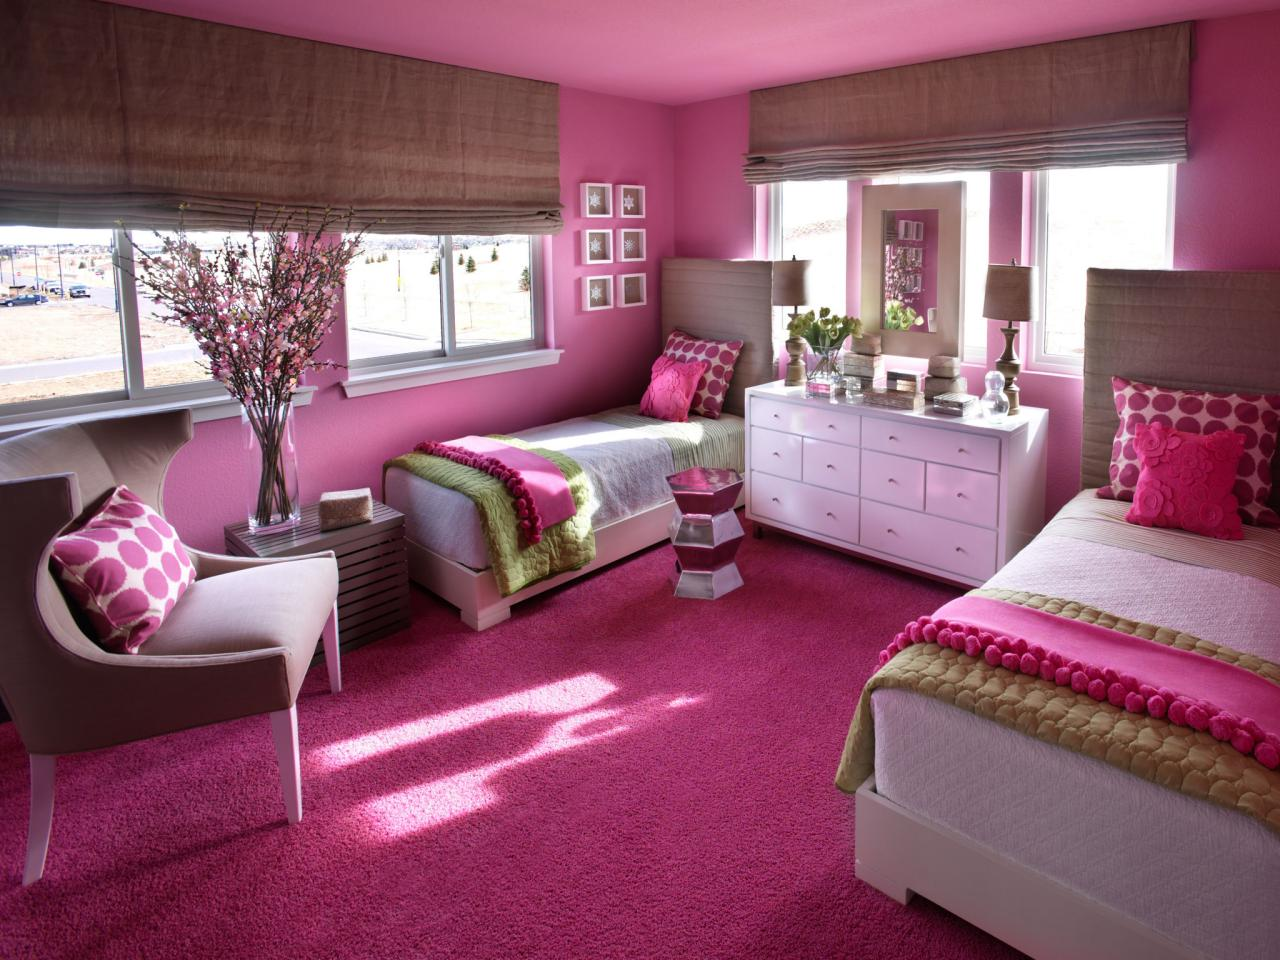 Paint colors for bedrooms pink - Vibrant Green Bedroom